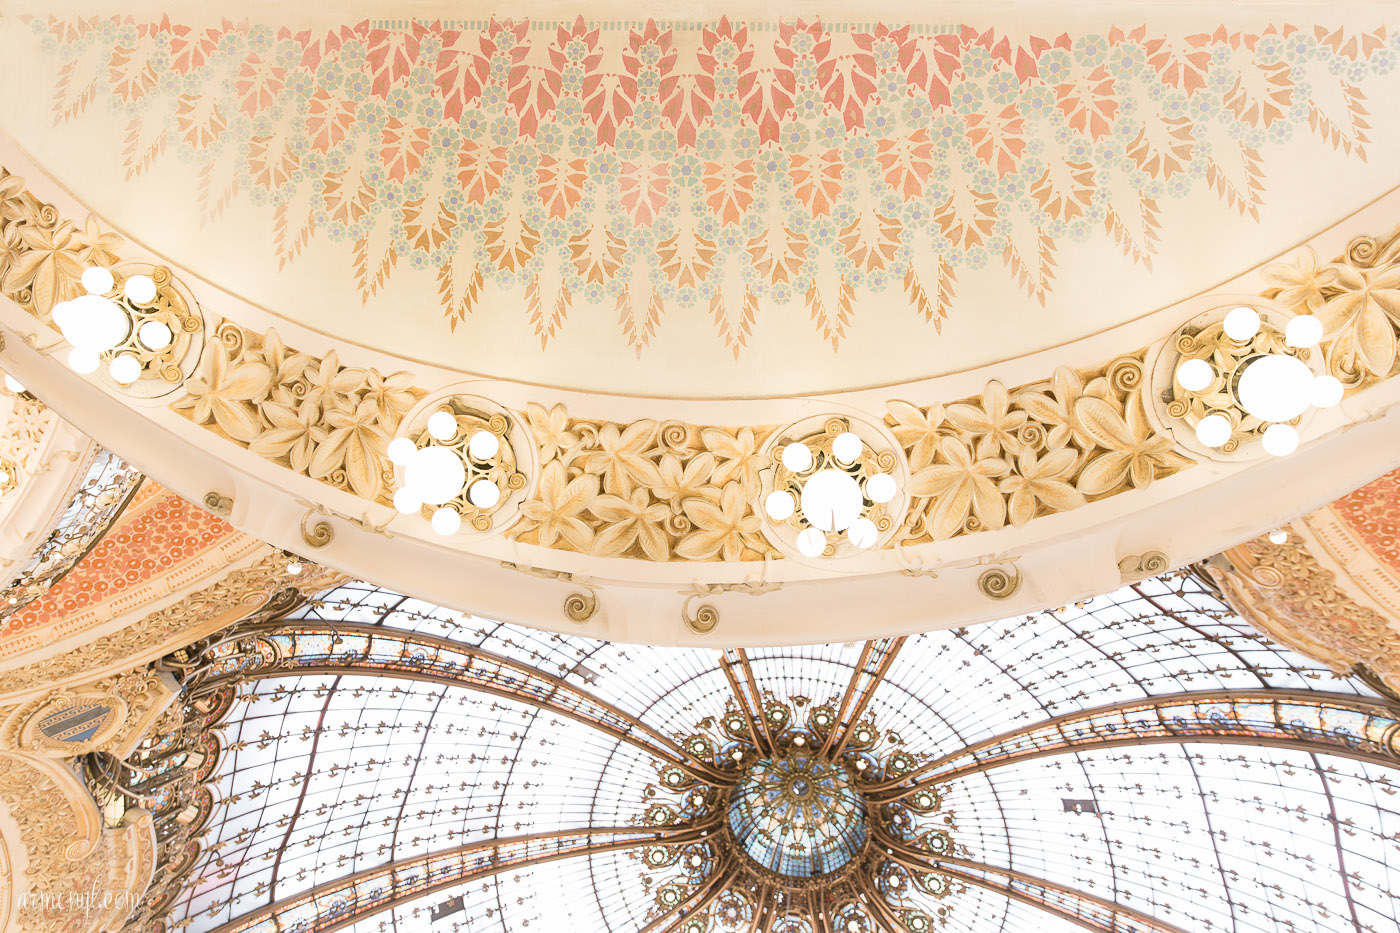 Inside Ceiling Galerie Lafayette, Paris photographed by Armenyl.com